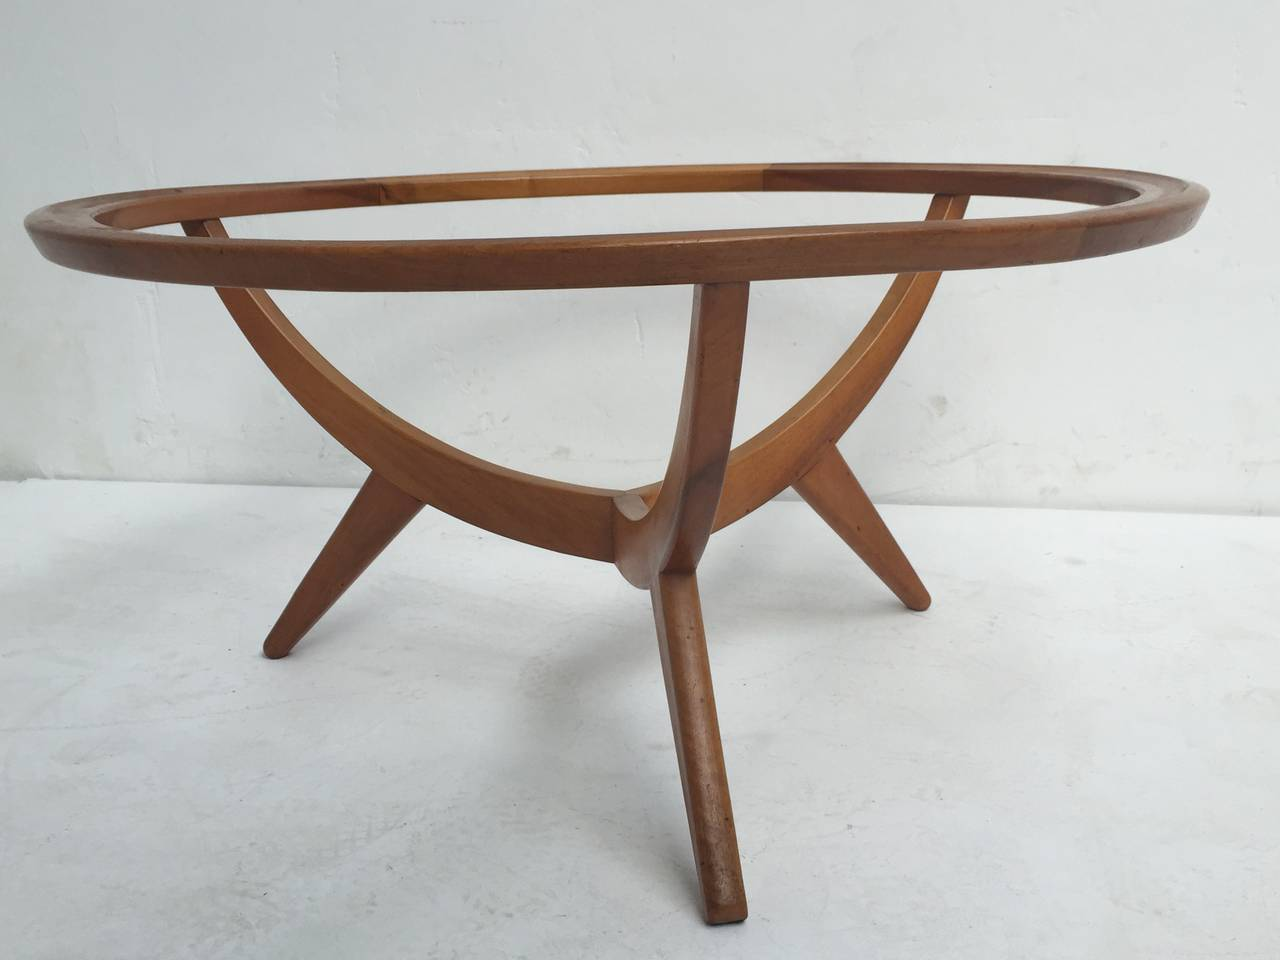 1950s Organic Tripod Coffee Table Attributed To Cesare Lacca Italy At 1stdibs